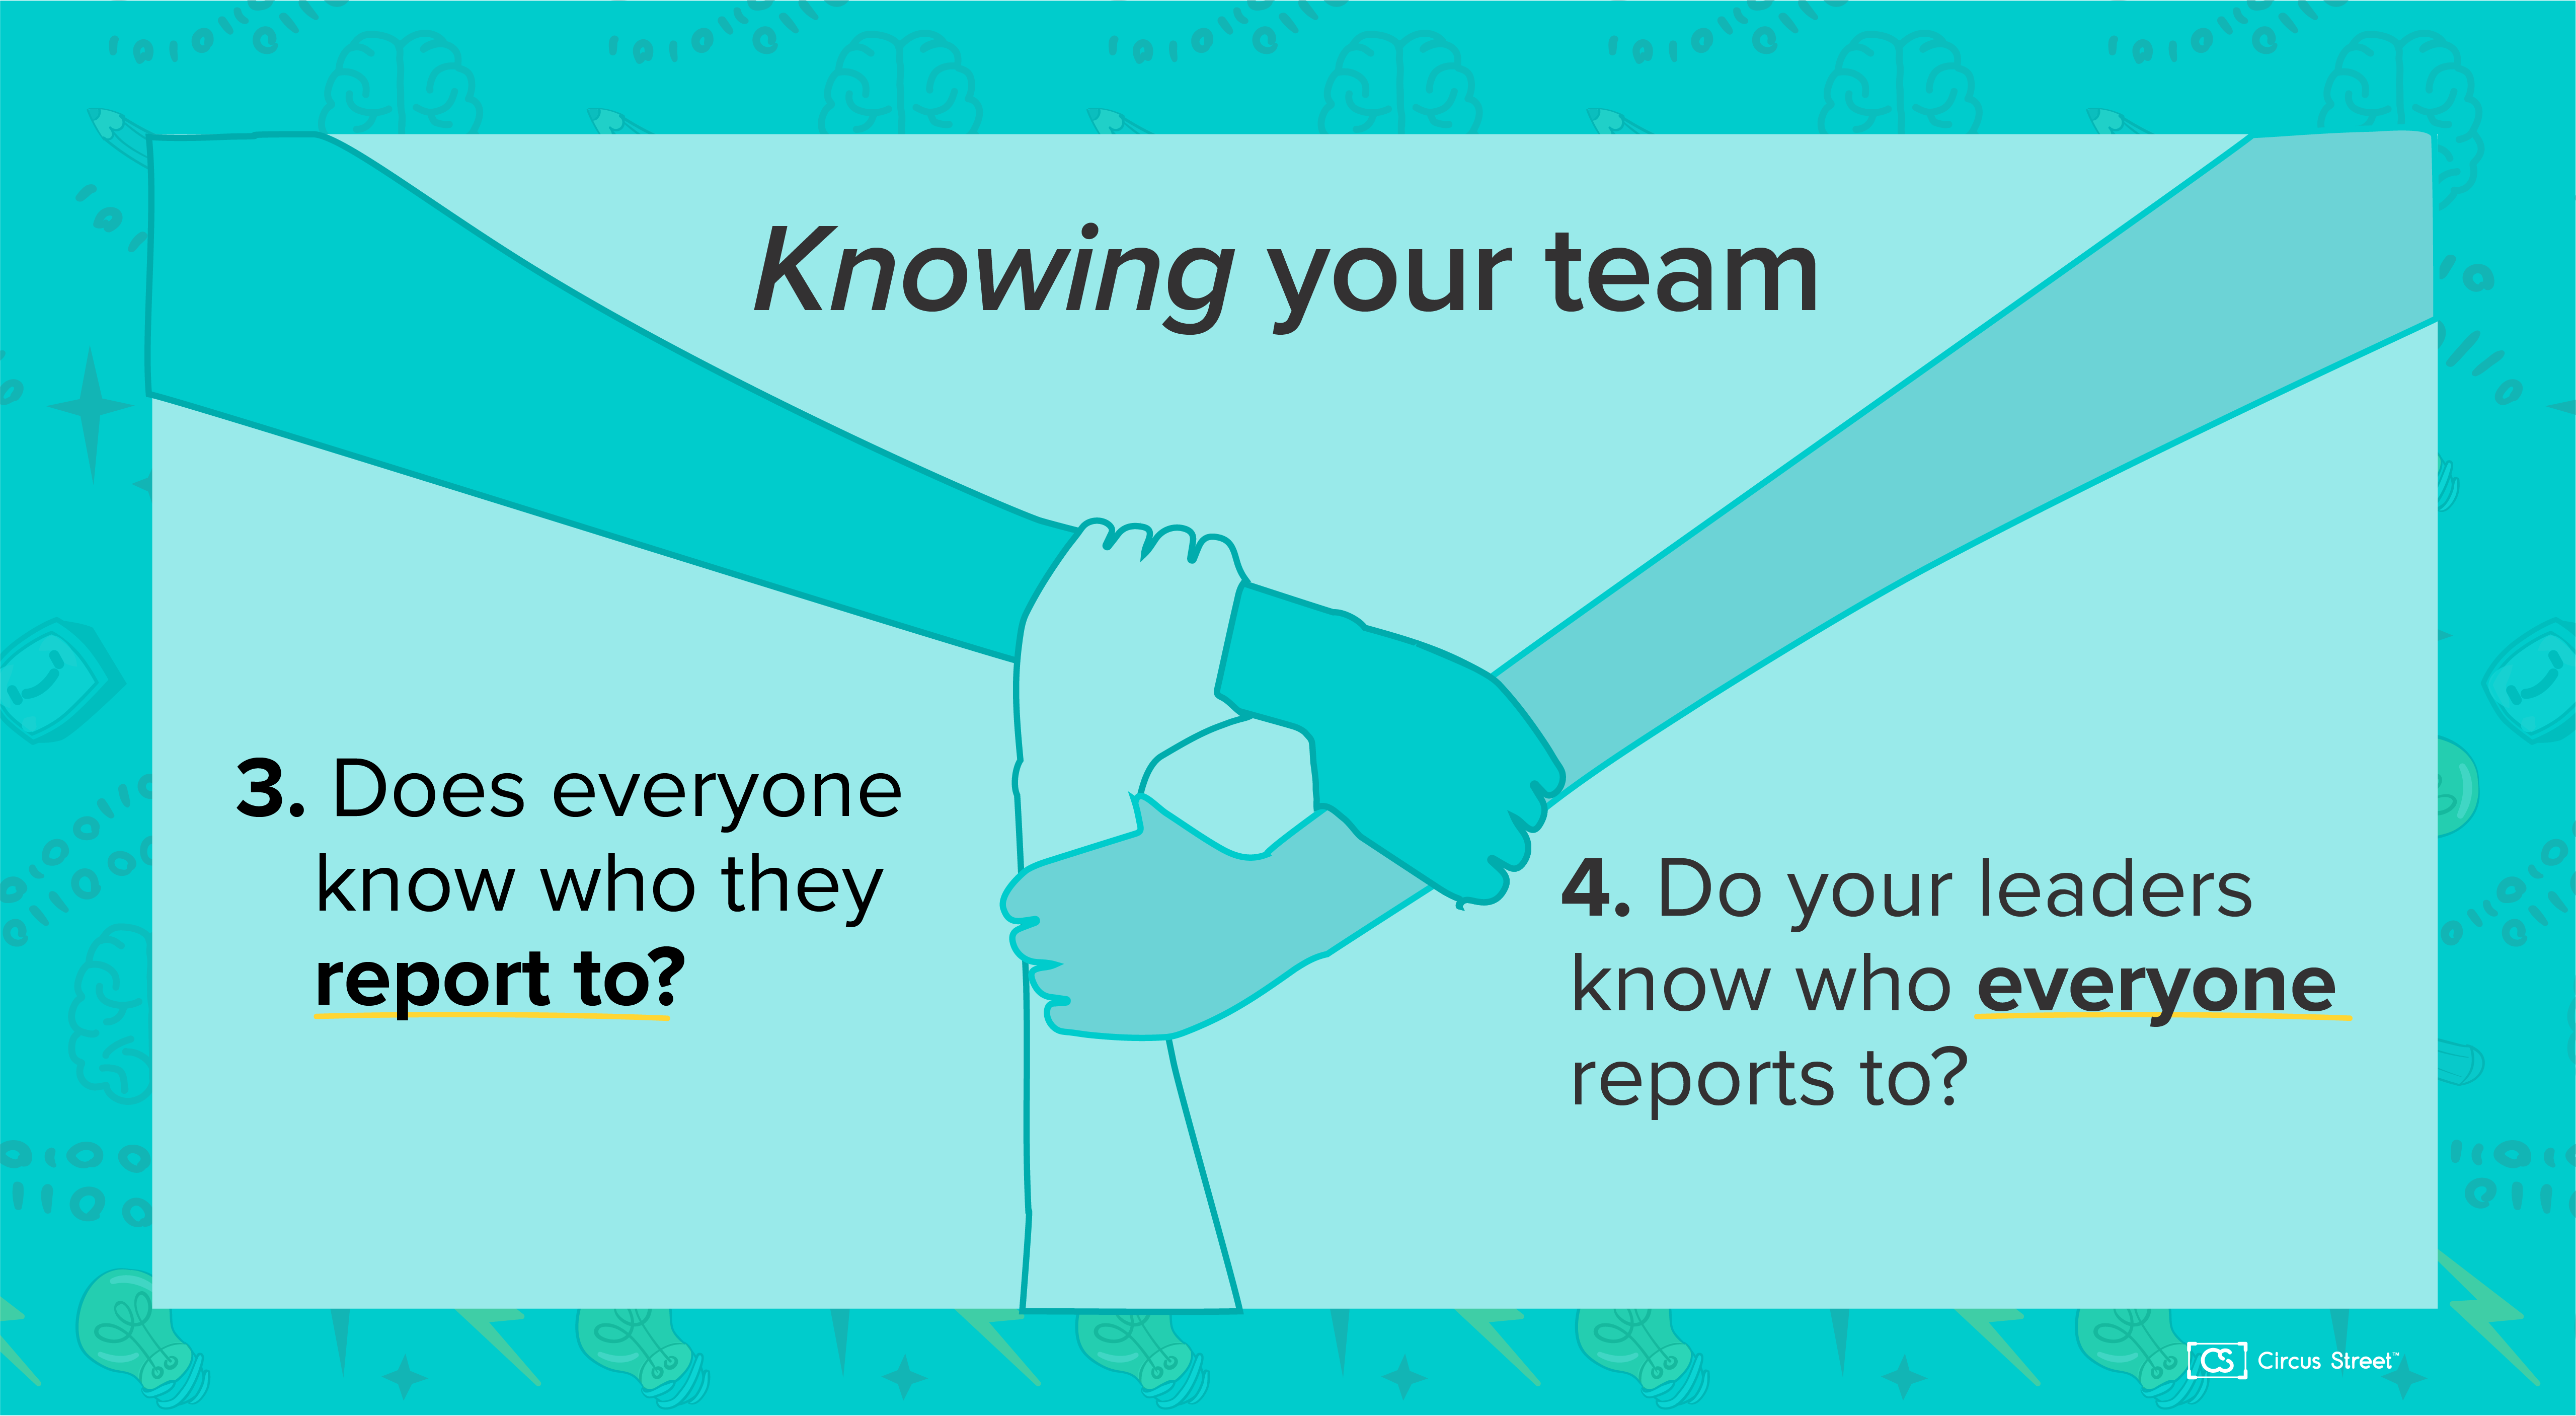 Knowing your team